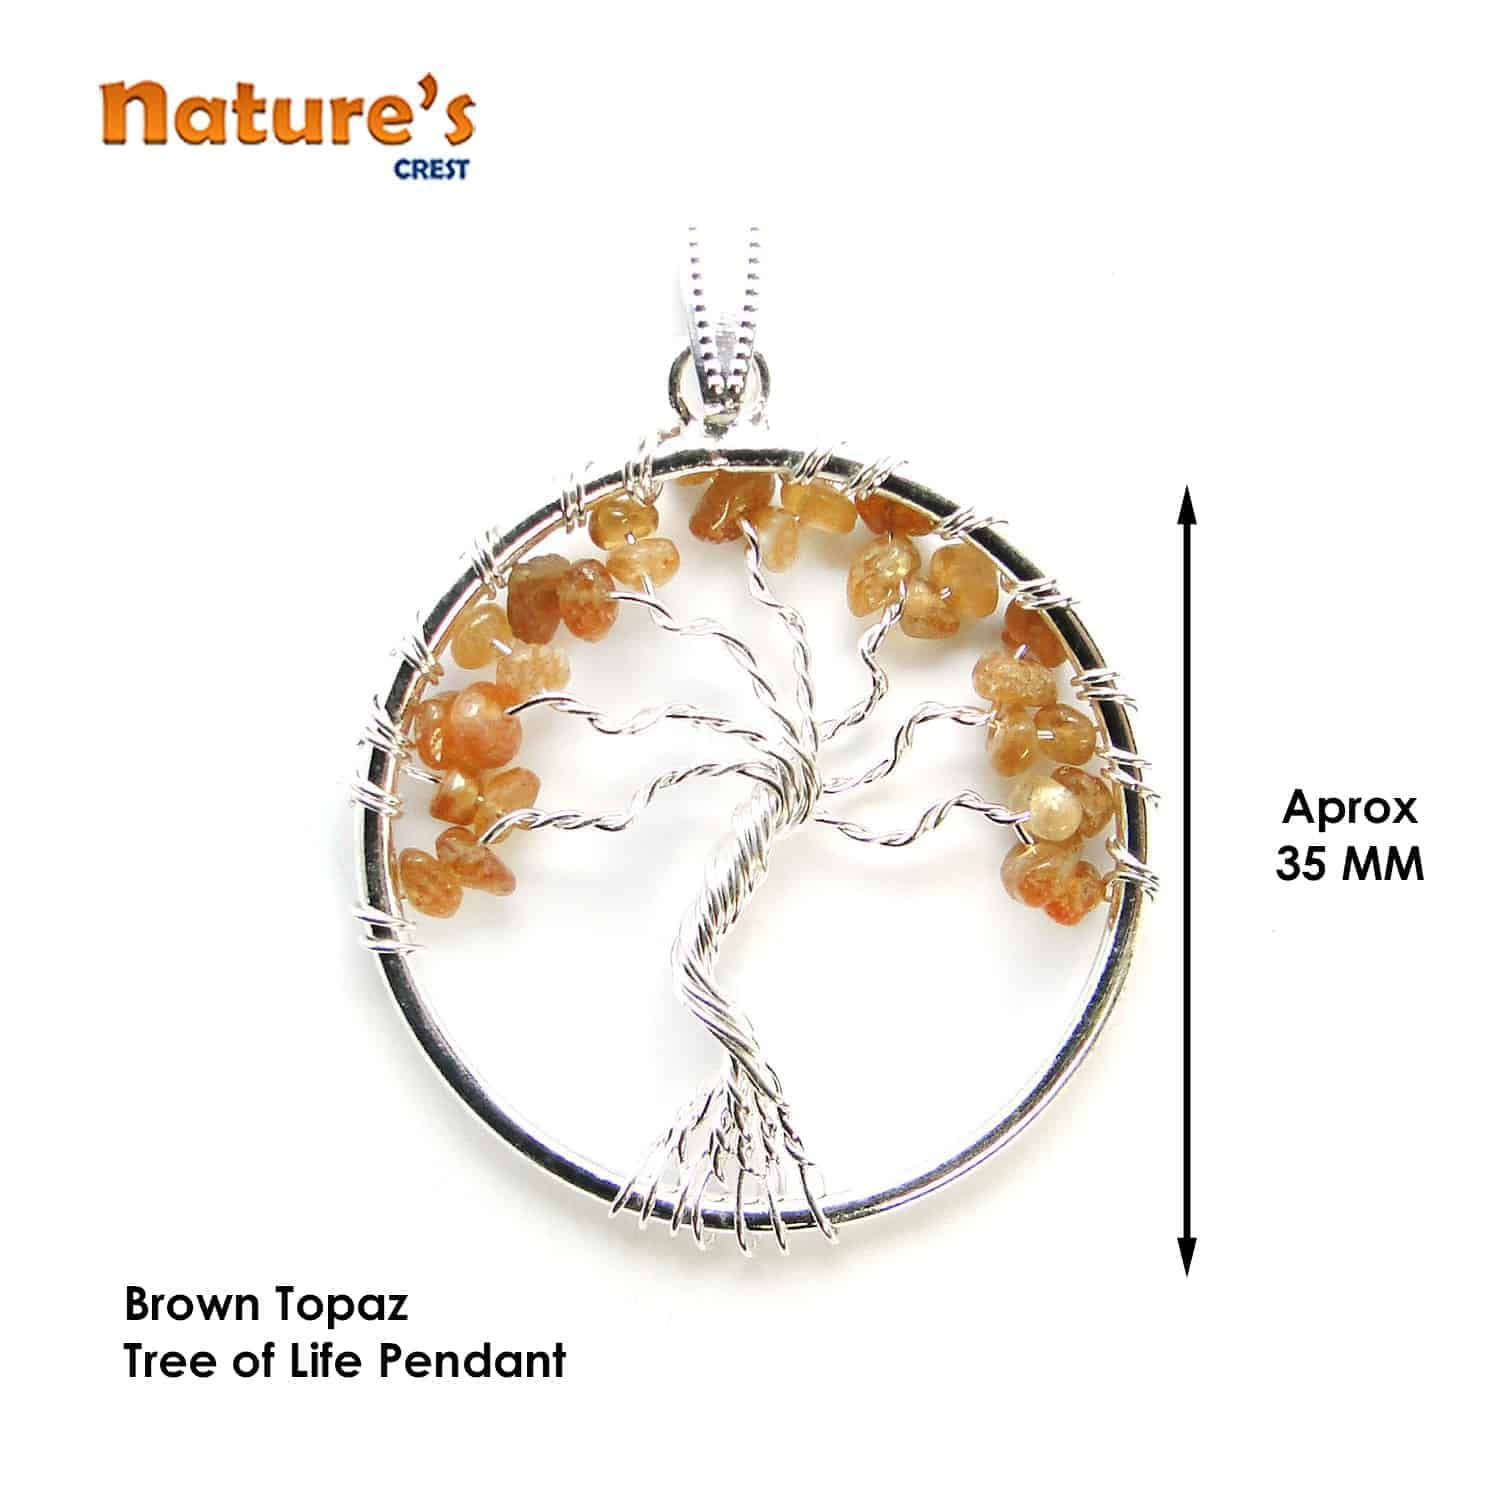 Brown Topaz Tree of Life Pendant Nature's Crest TOL003 ₹ 249.00